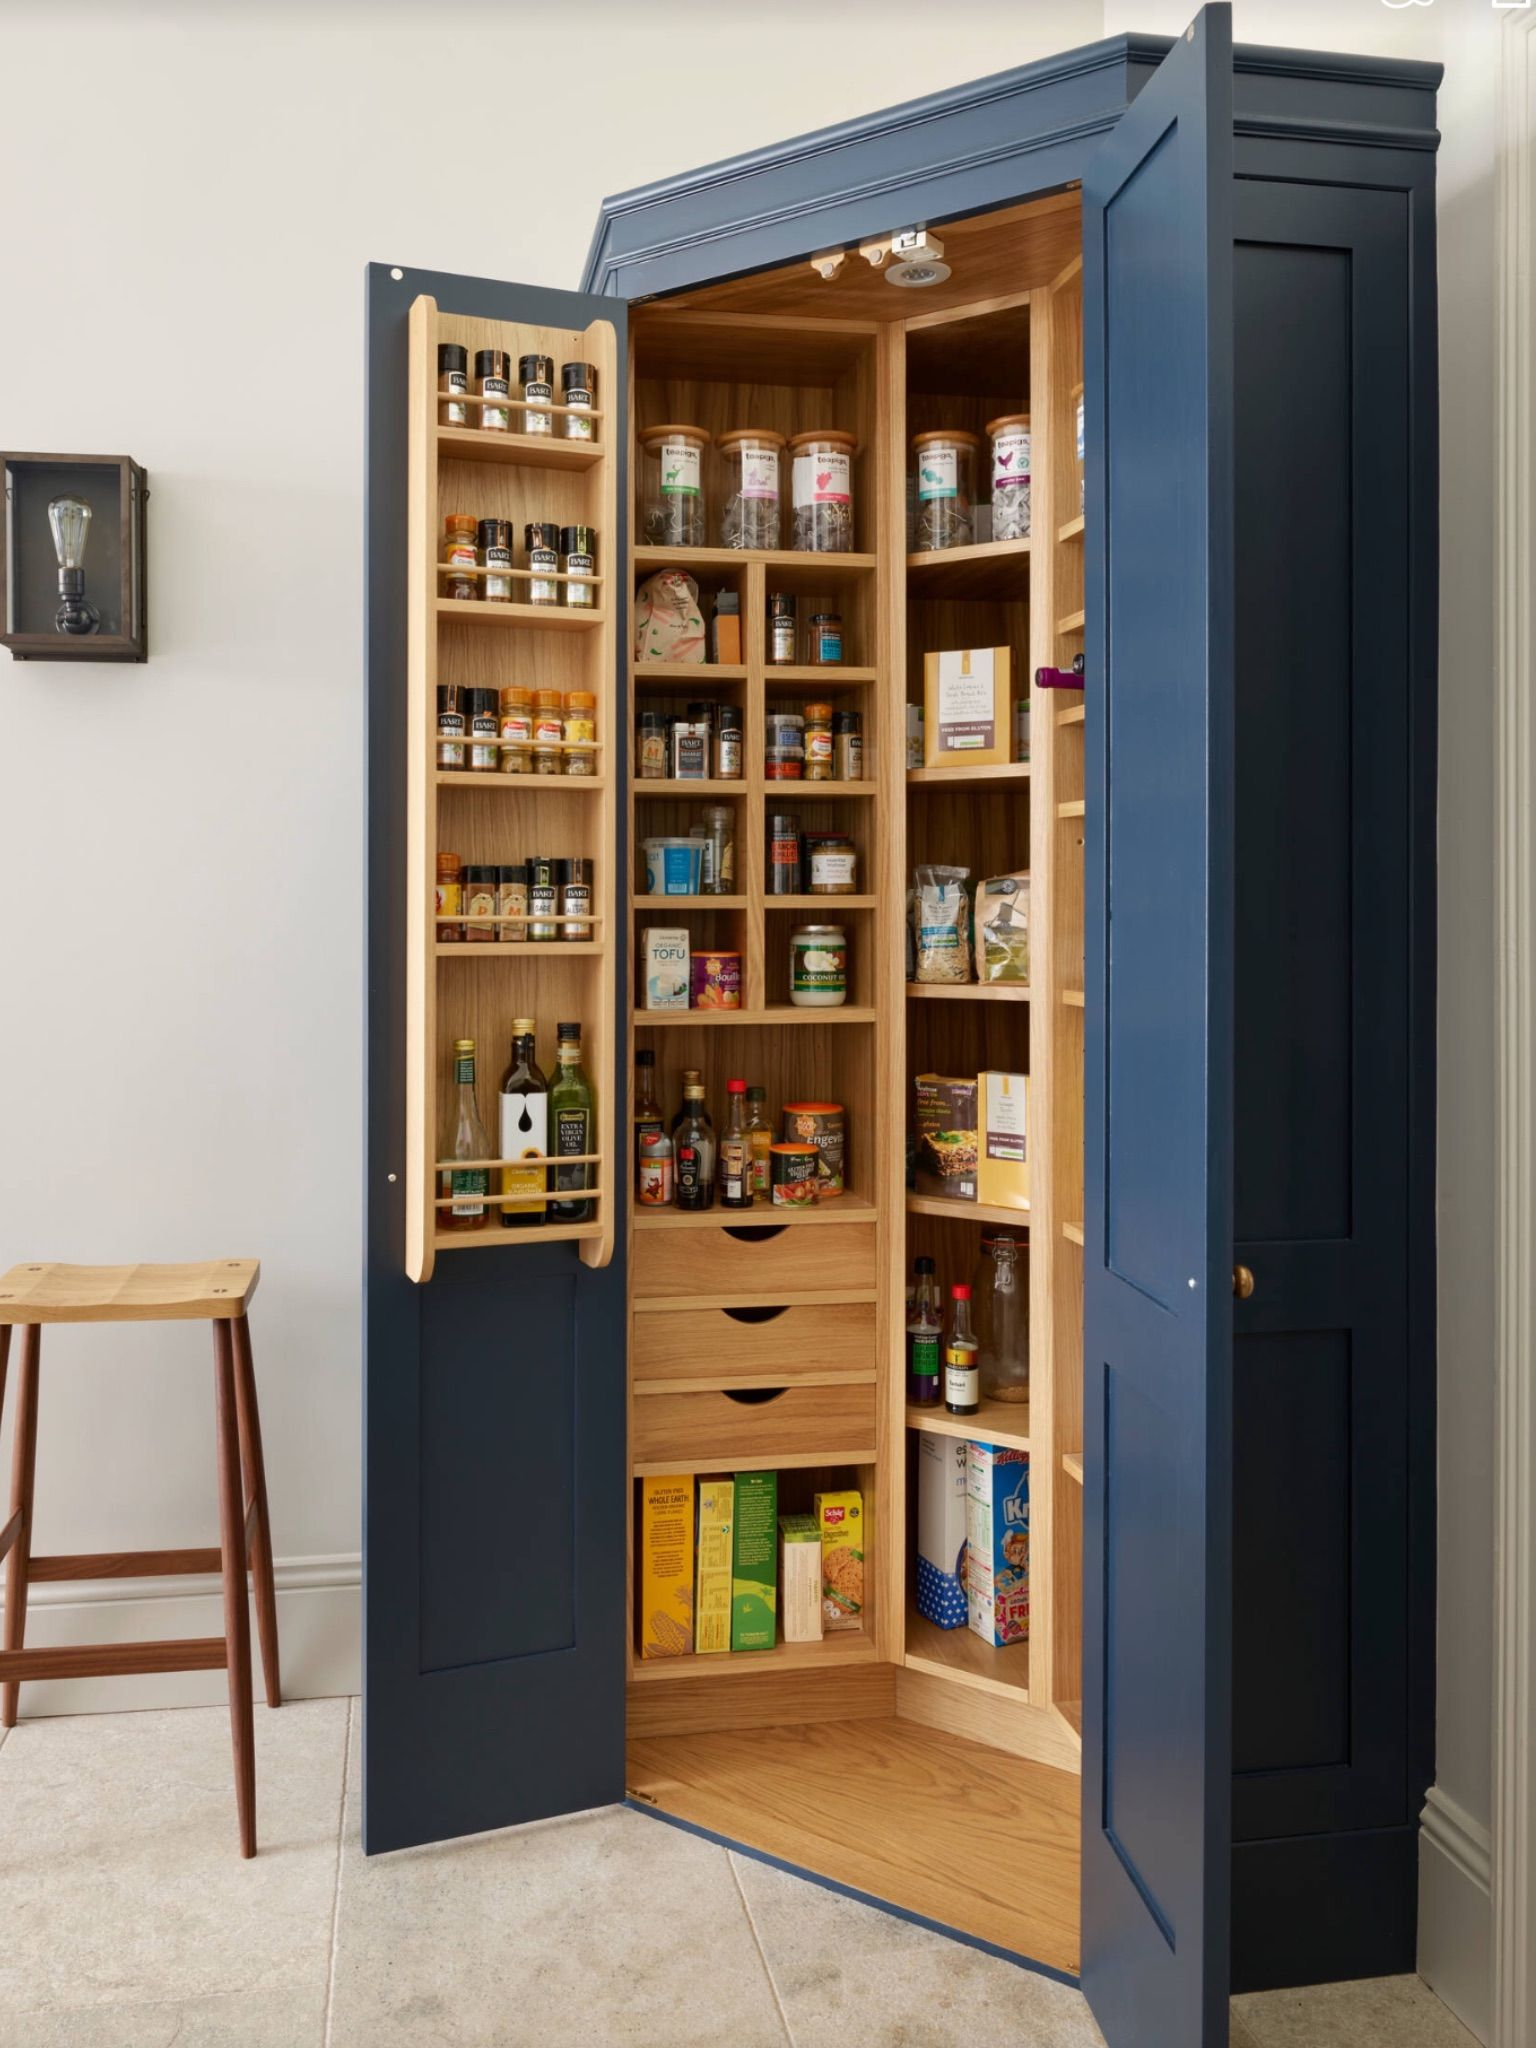 Kitchen pantry | Kitchen | Pinterest | Despensa, Cocinas y ...